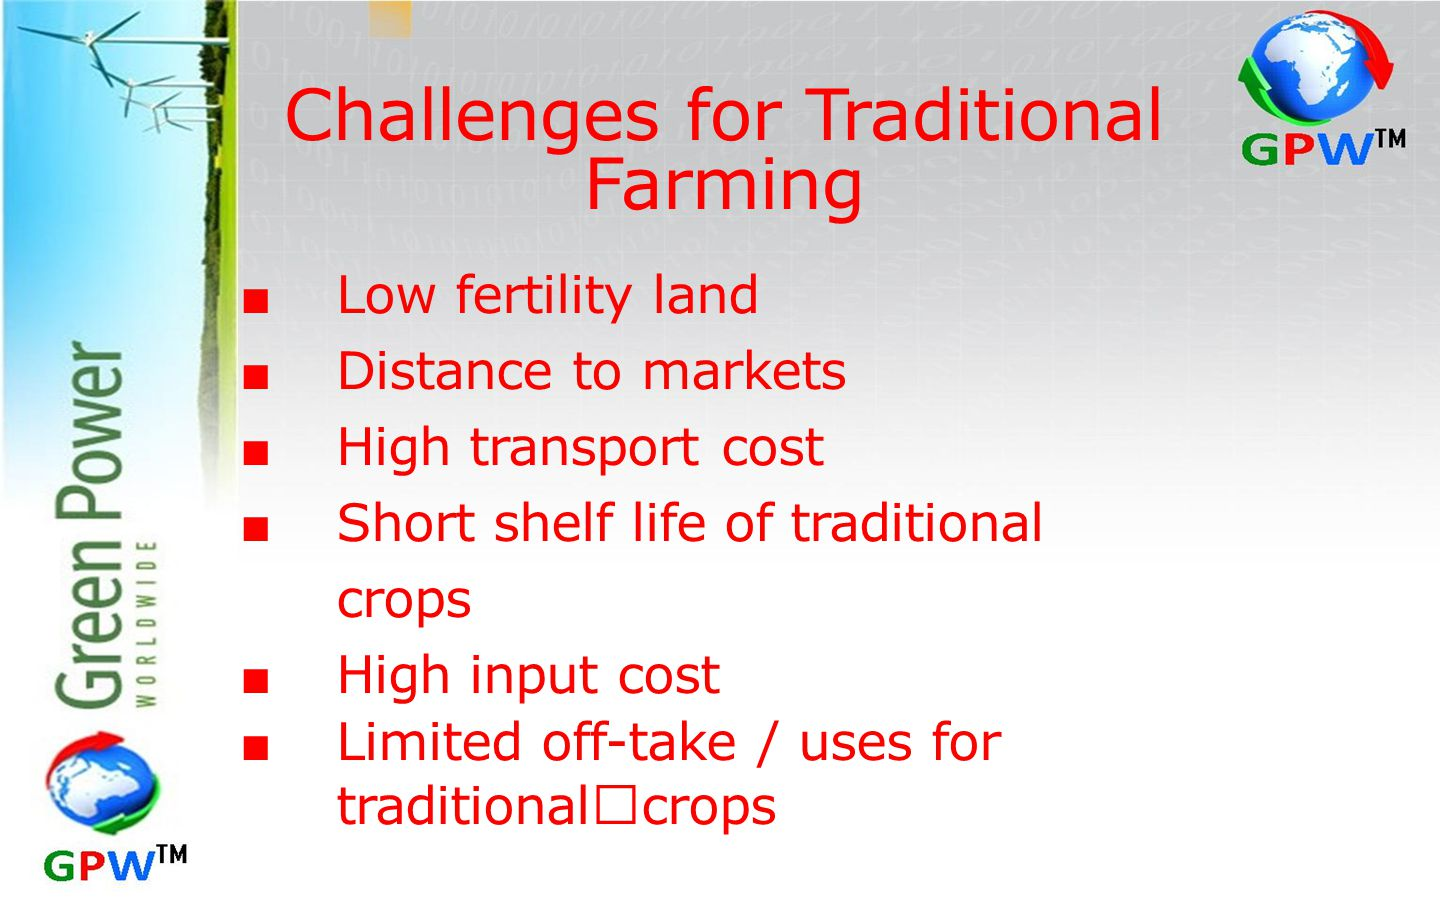 Challenges for Traditional Farming